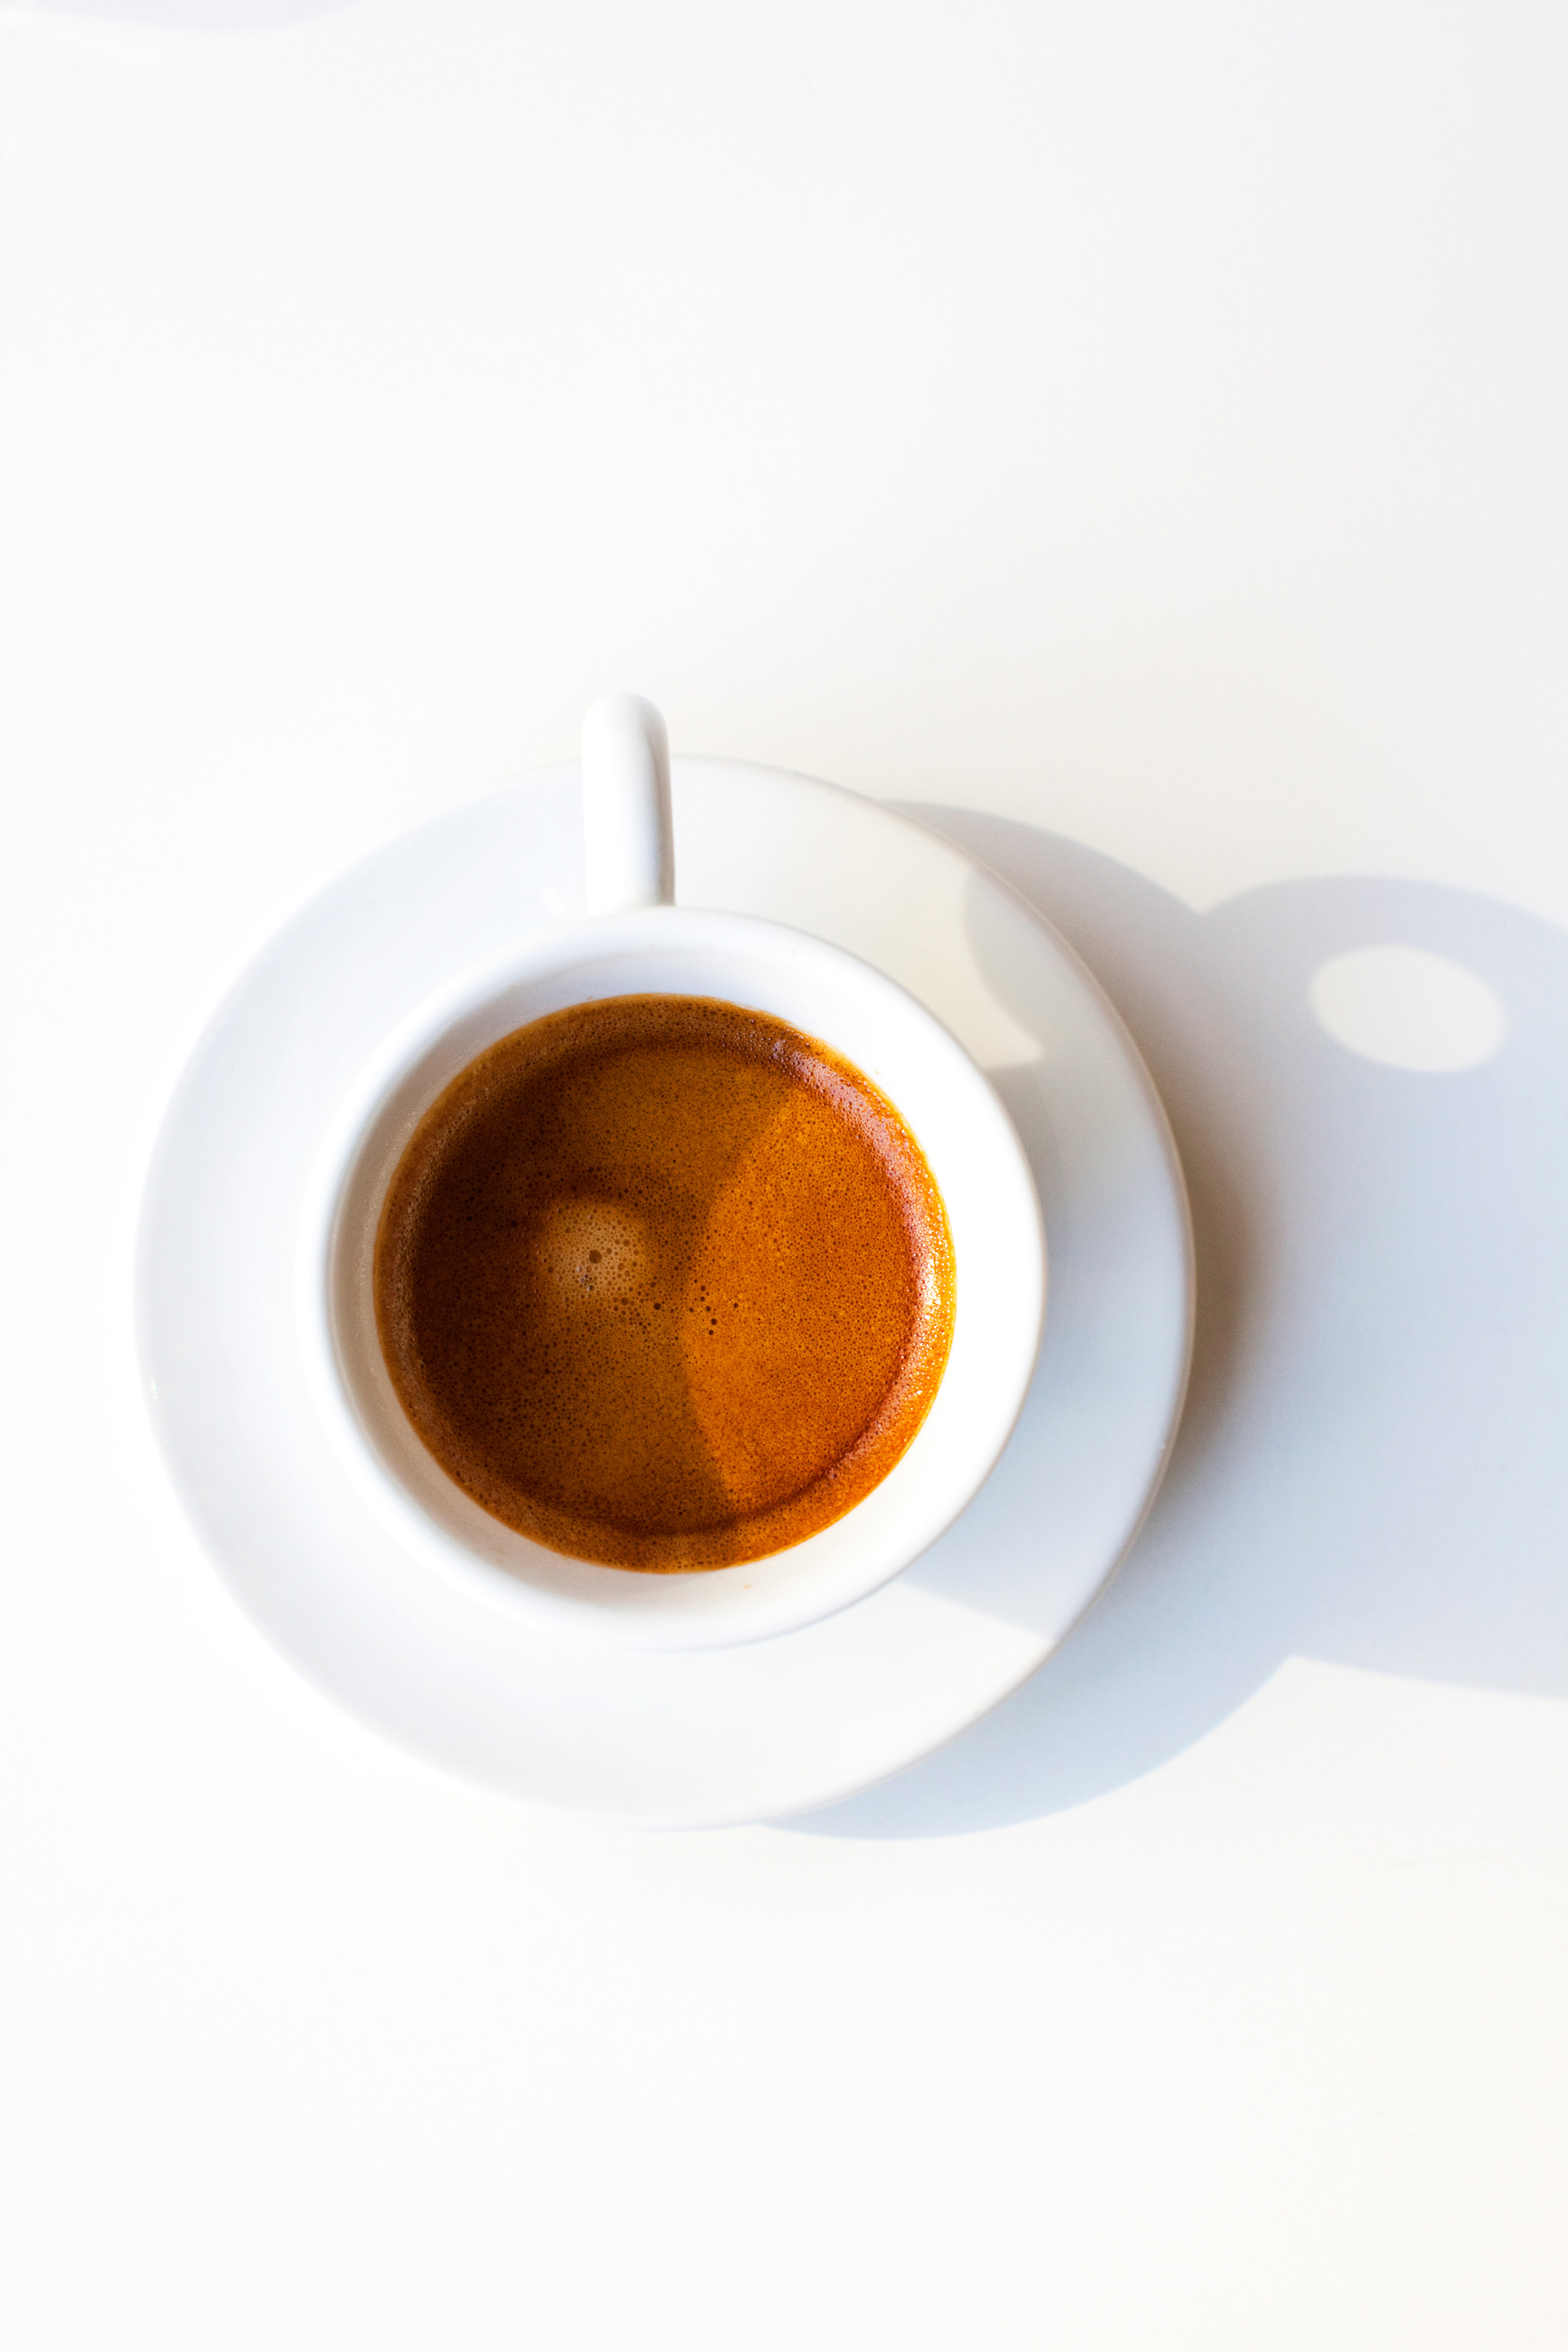 034_morning_Espresso_9035